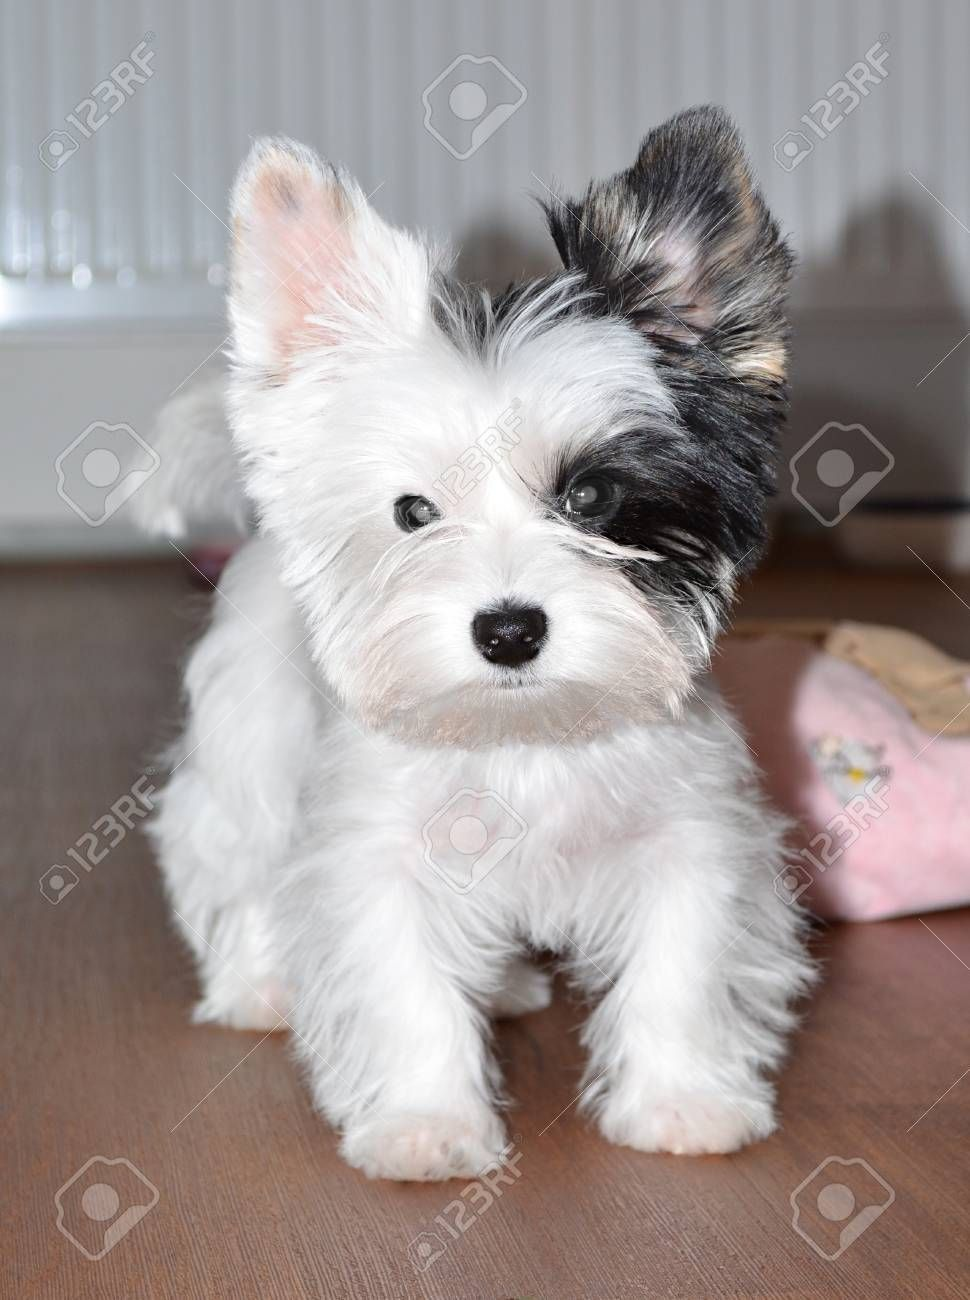 Stock Photo Cute baby dogs, Yorkshire terrier puppies